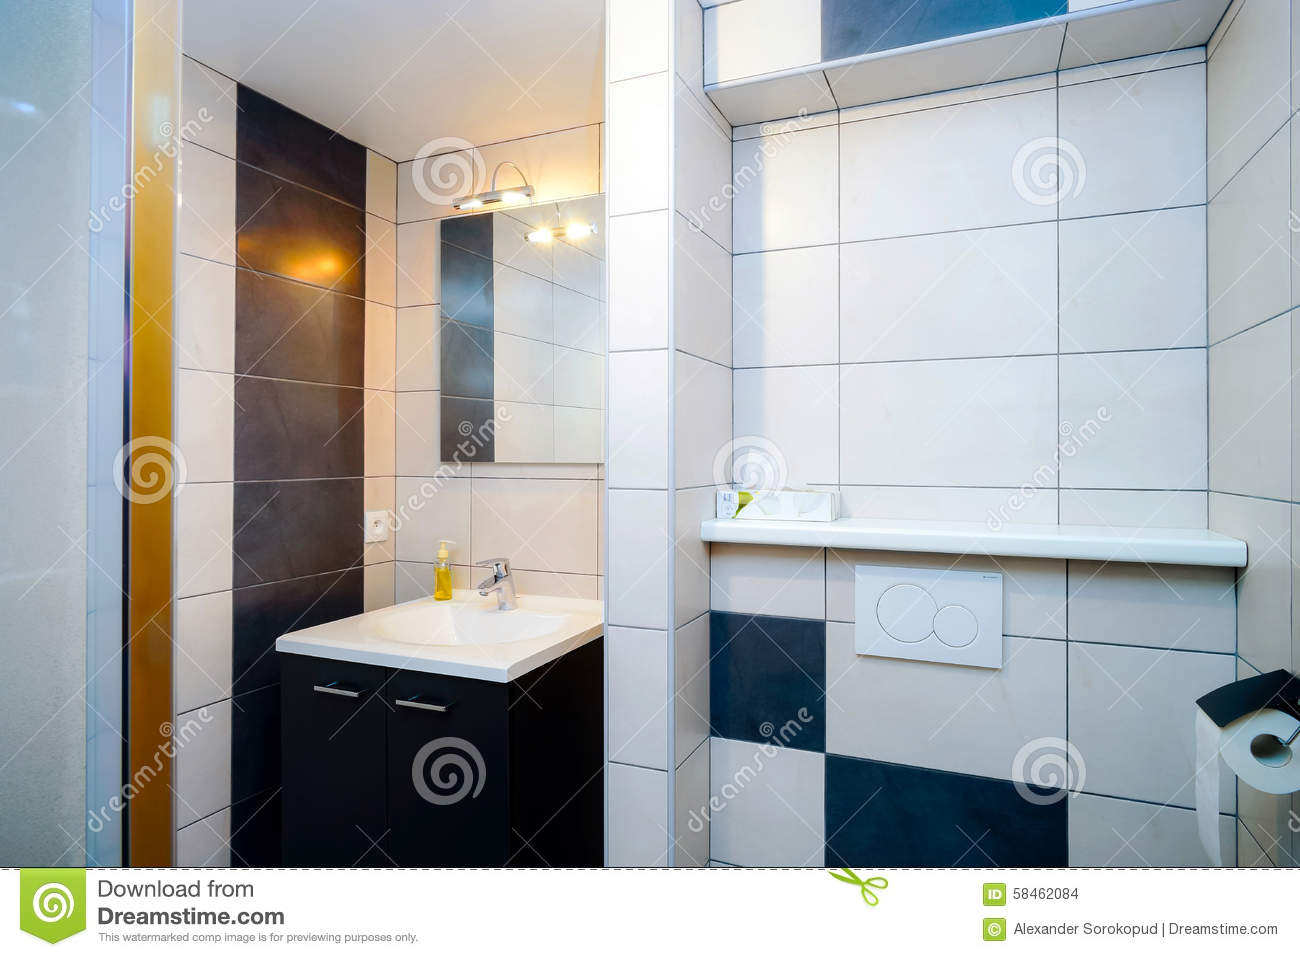 New Modern Wc With Douche In Apartment Stock Photo - Image of ...